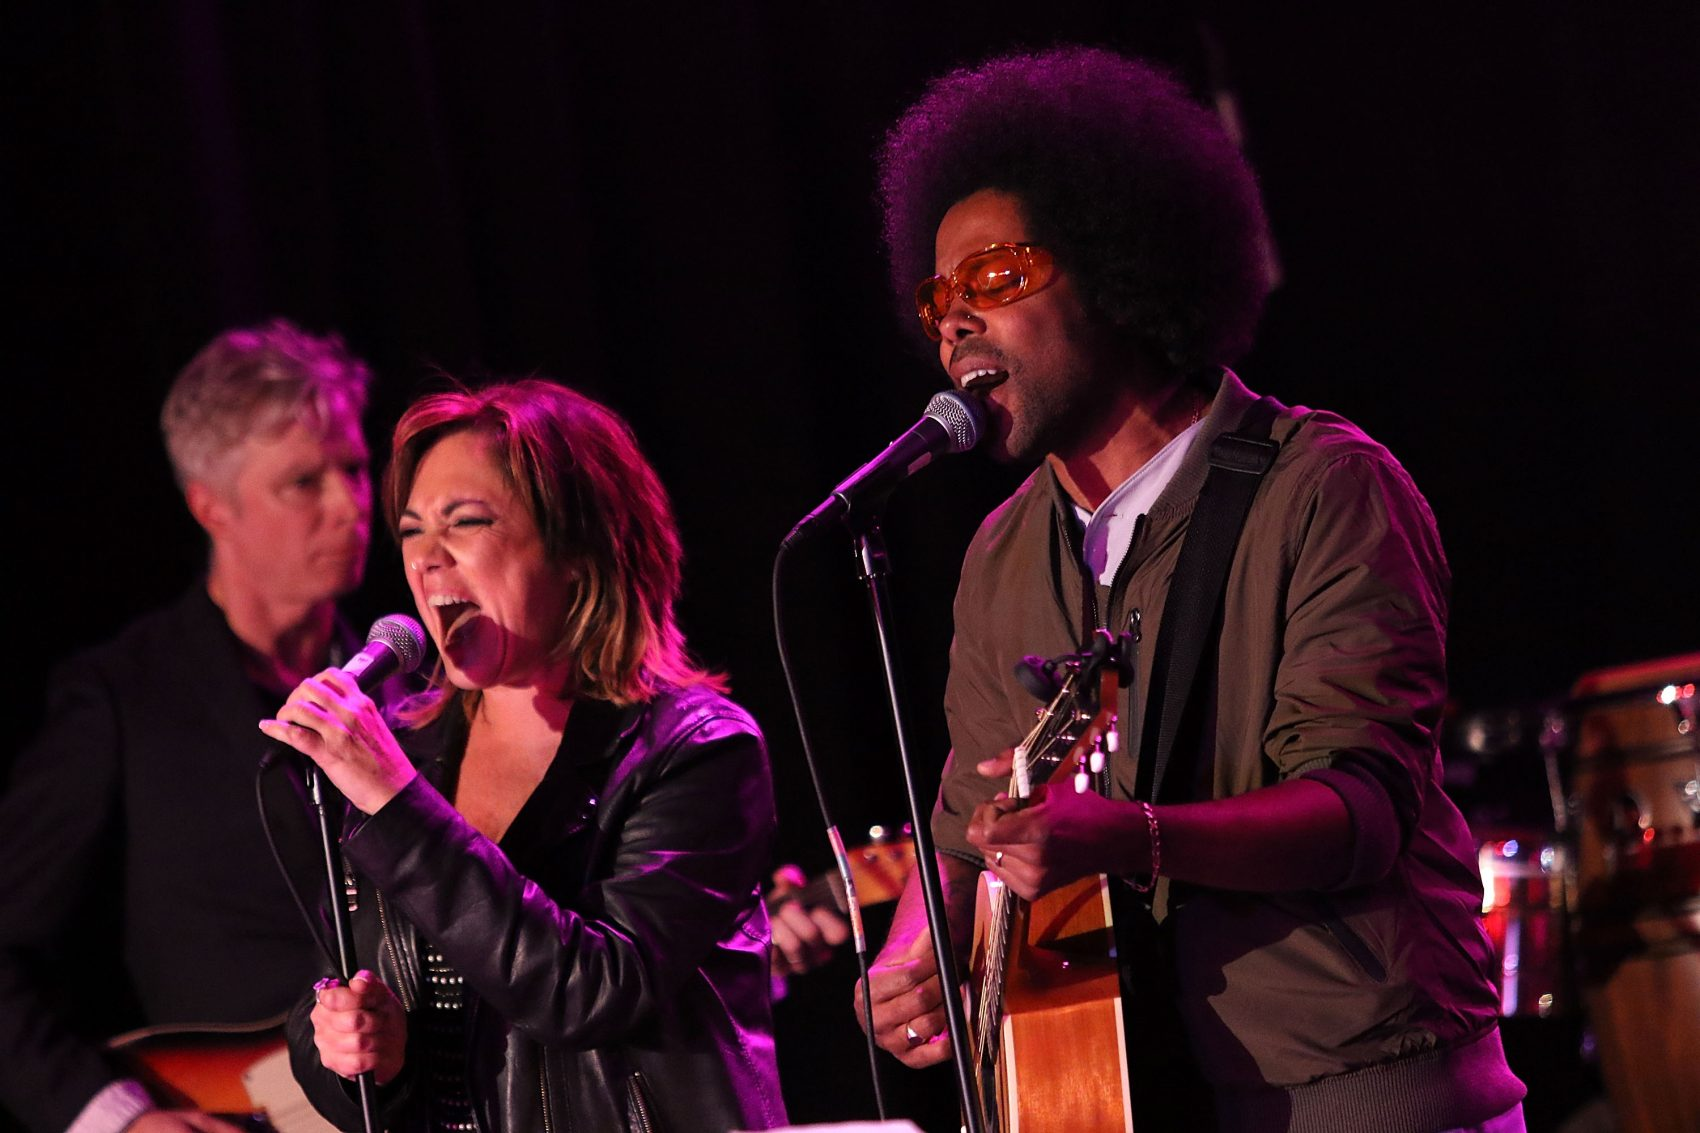 Singers Claudia Brant and Alex Cuba perform onstage during a concert in 2015. (JC Olivera/Getty Images for ASCAP, BMI, SESAC & Los Producers Charity Concert)